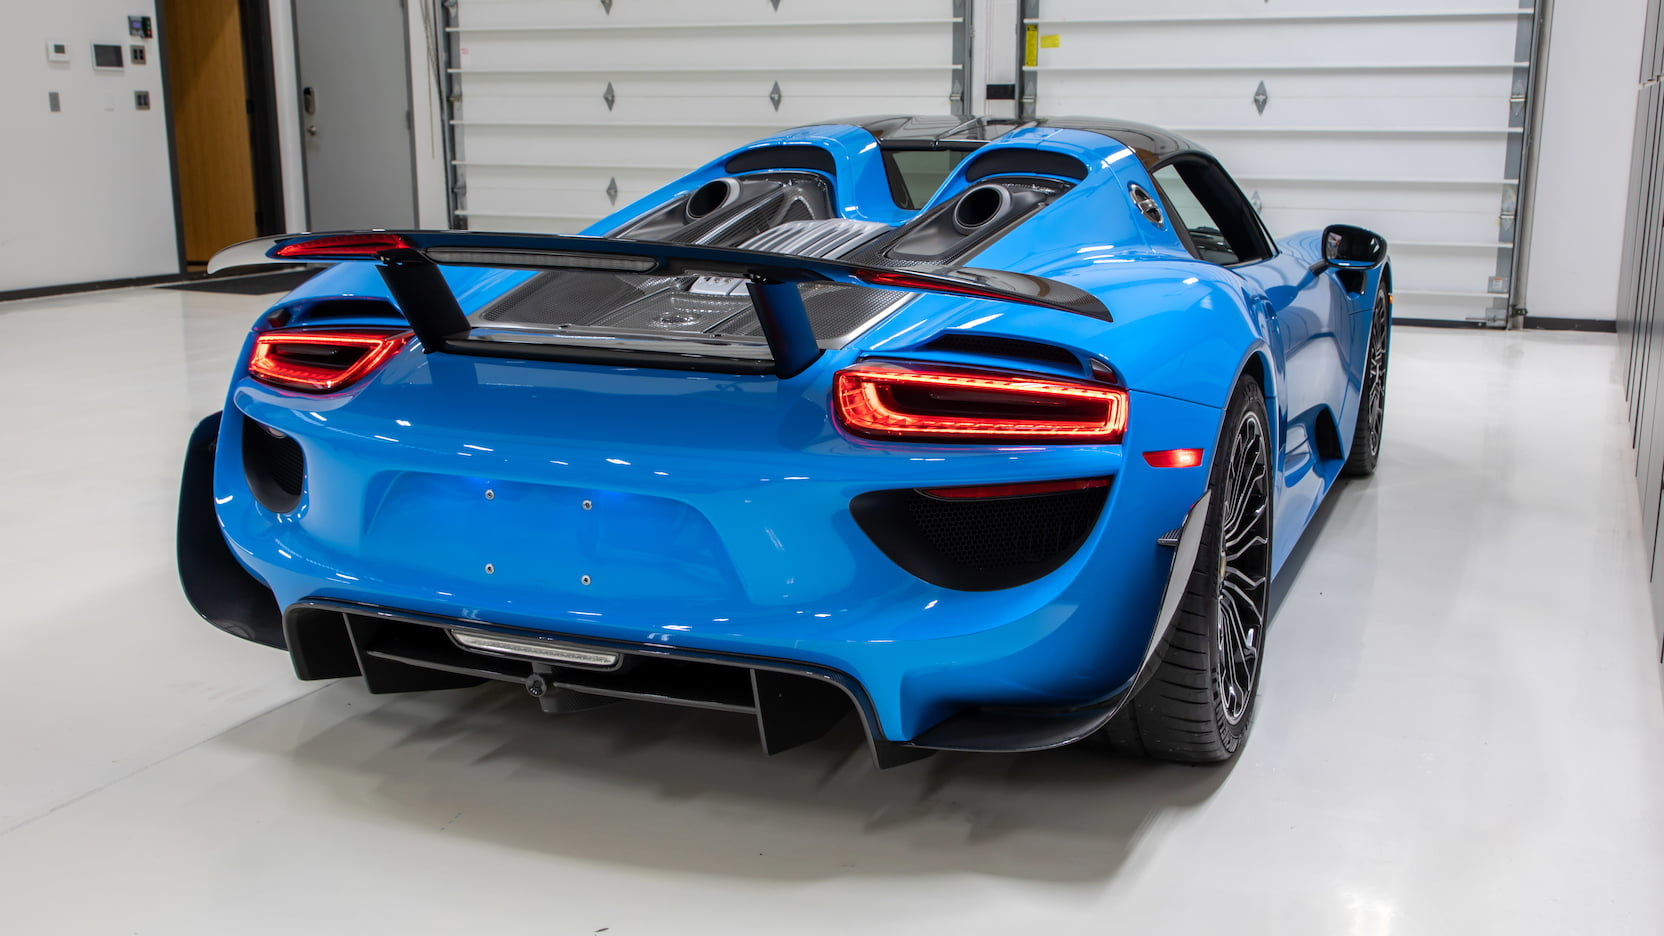 Porsche-918-Spyder-Riviera-Blue-auction-13